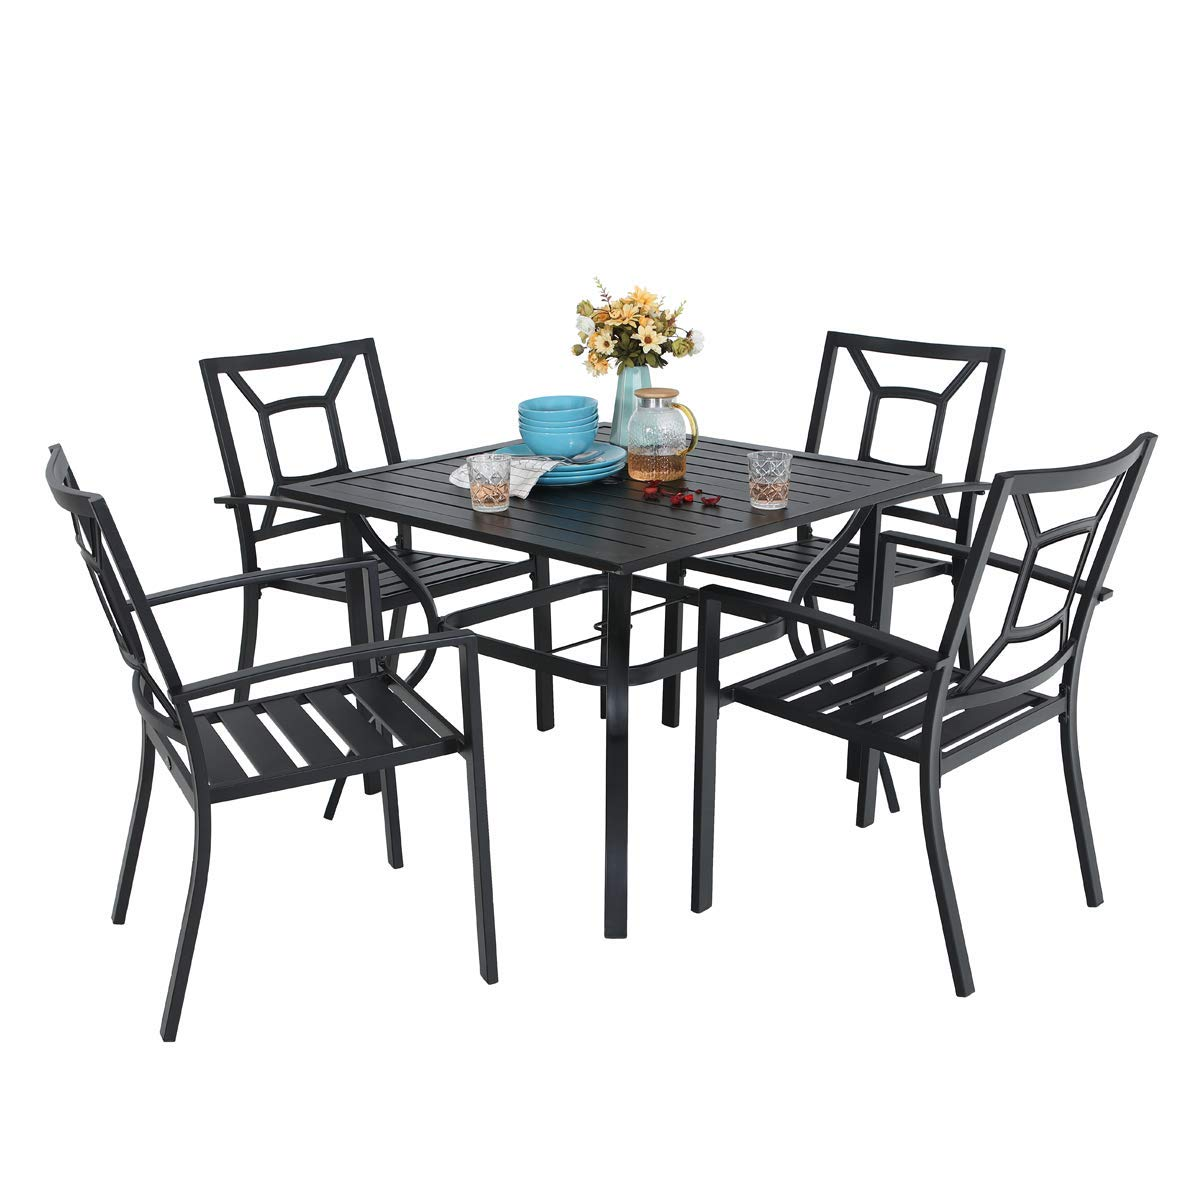 PHI VILLA 5 Piece Metal Patio Dining Set Armrest Dining Chairs and Larger Square Table Set, 37 Square Bistro Table and 4 Backyard Garden Chairs - Umbrella Hole 1.57 , Black